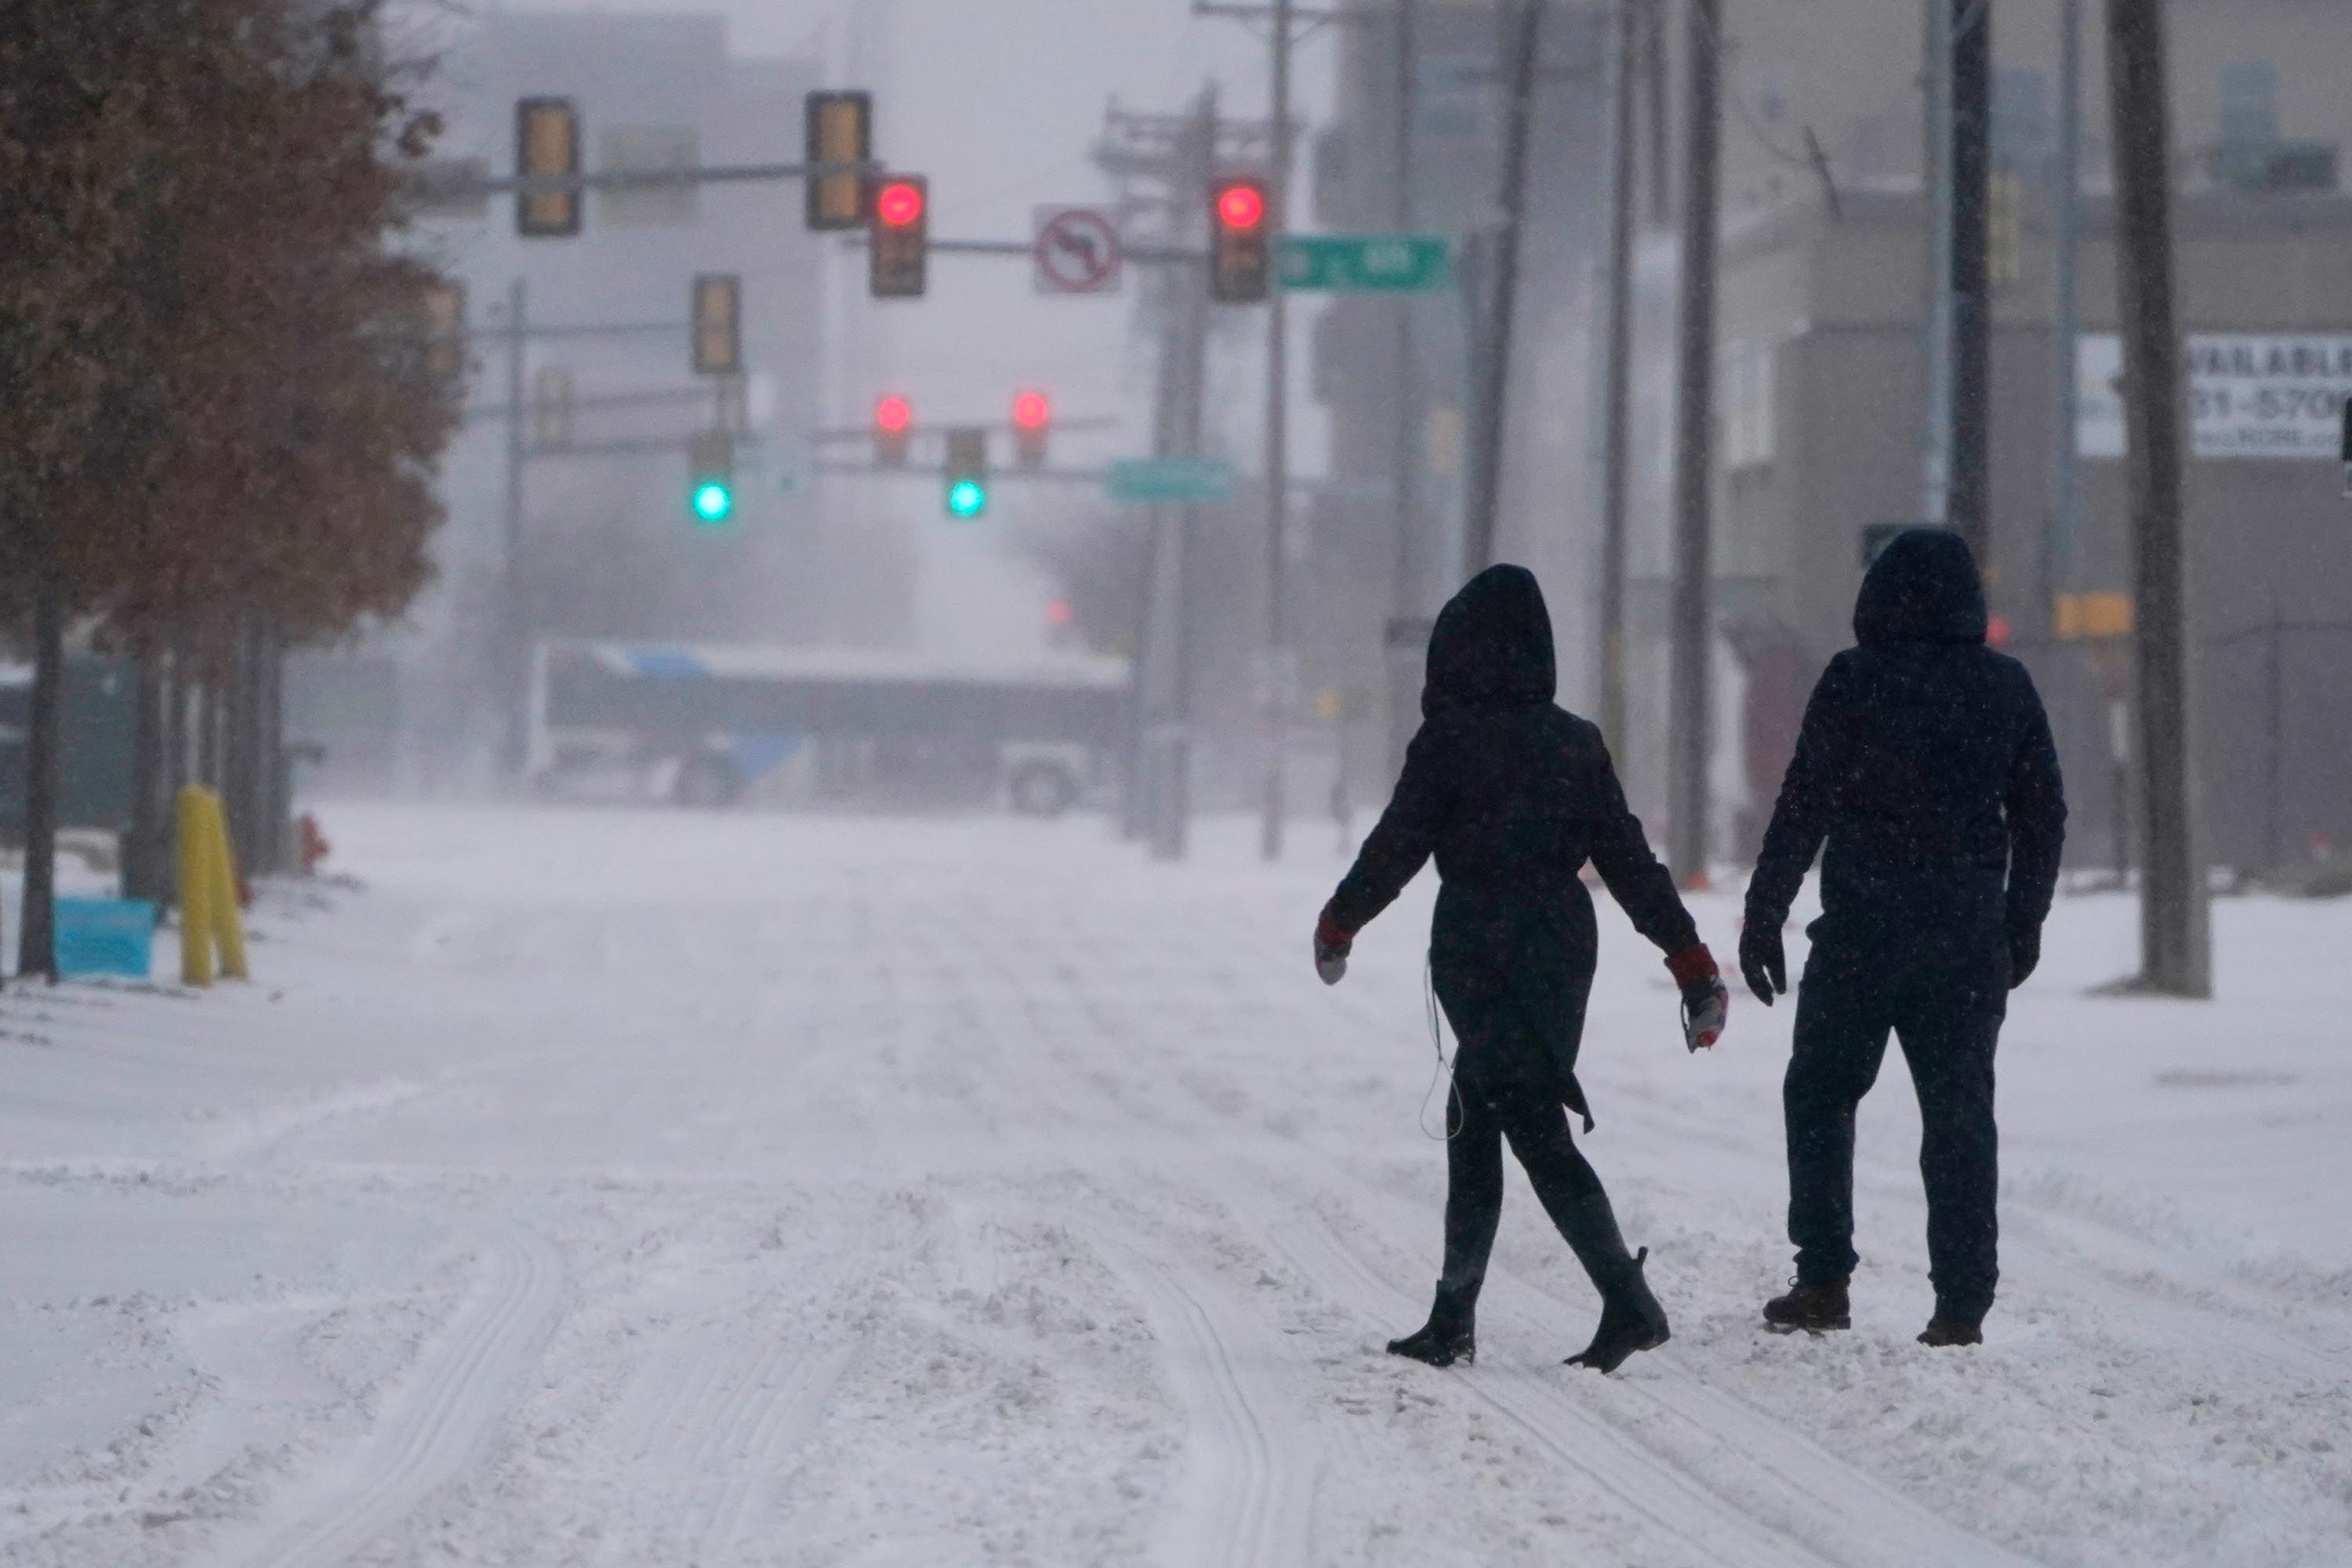 People walk down a street during a winter storm in Oklahoma City, Sunday, February 14.